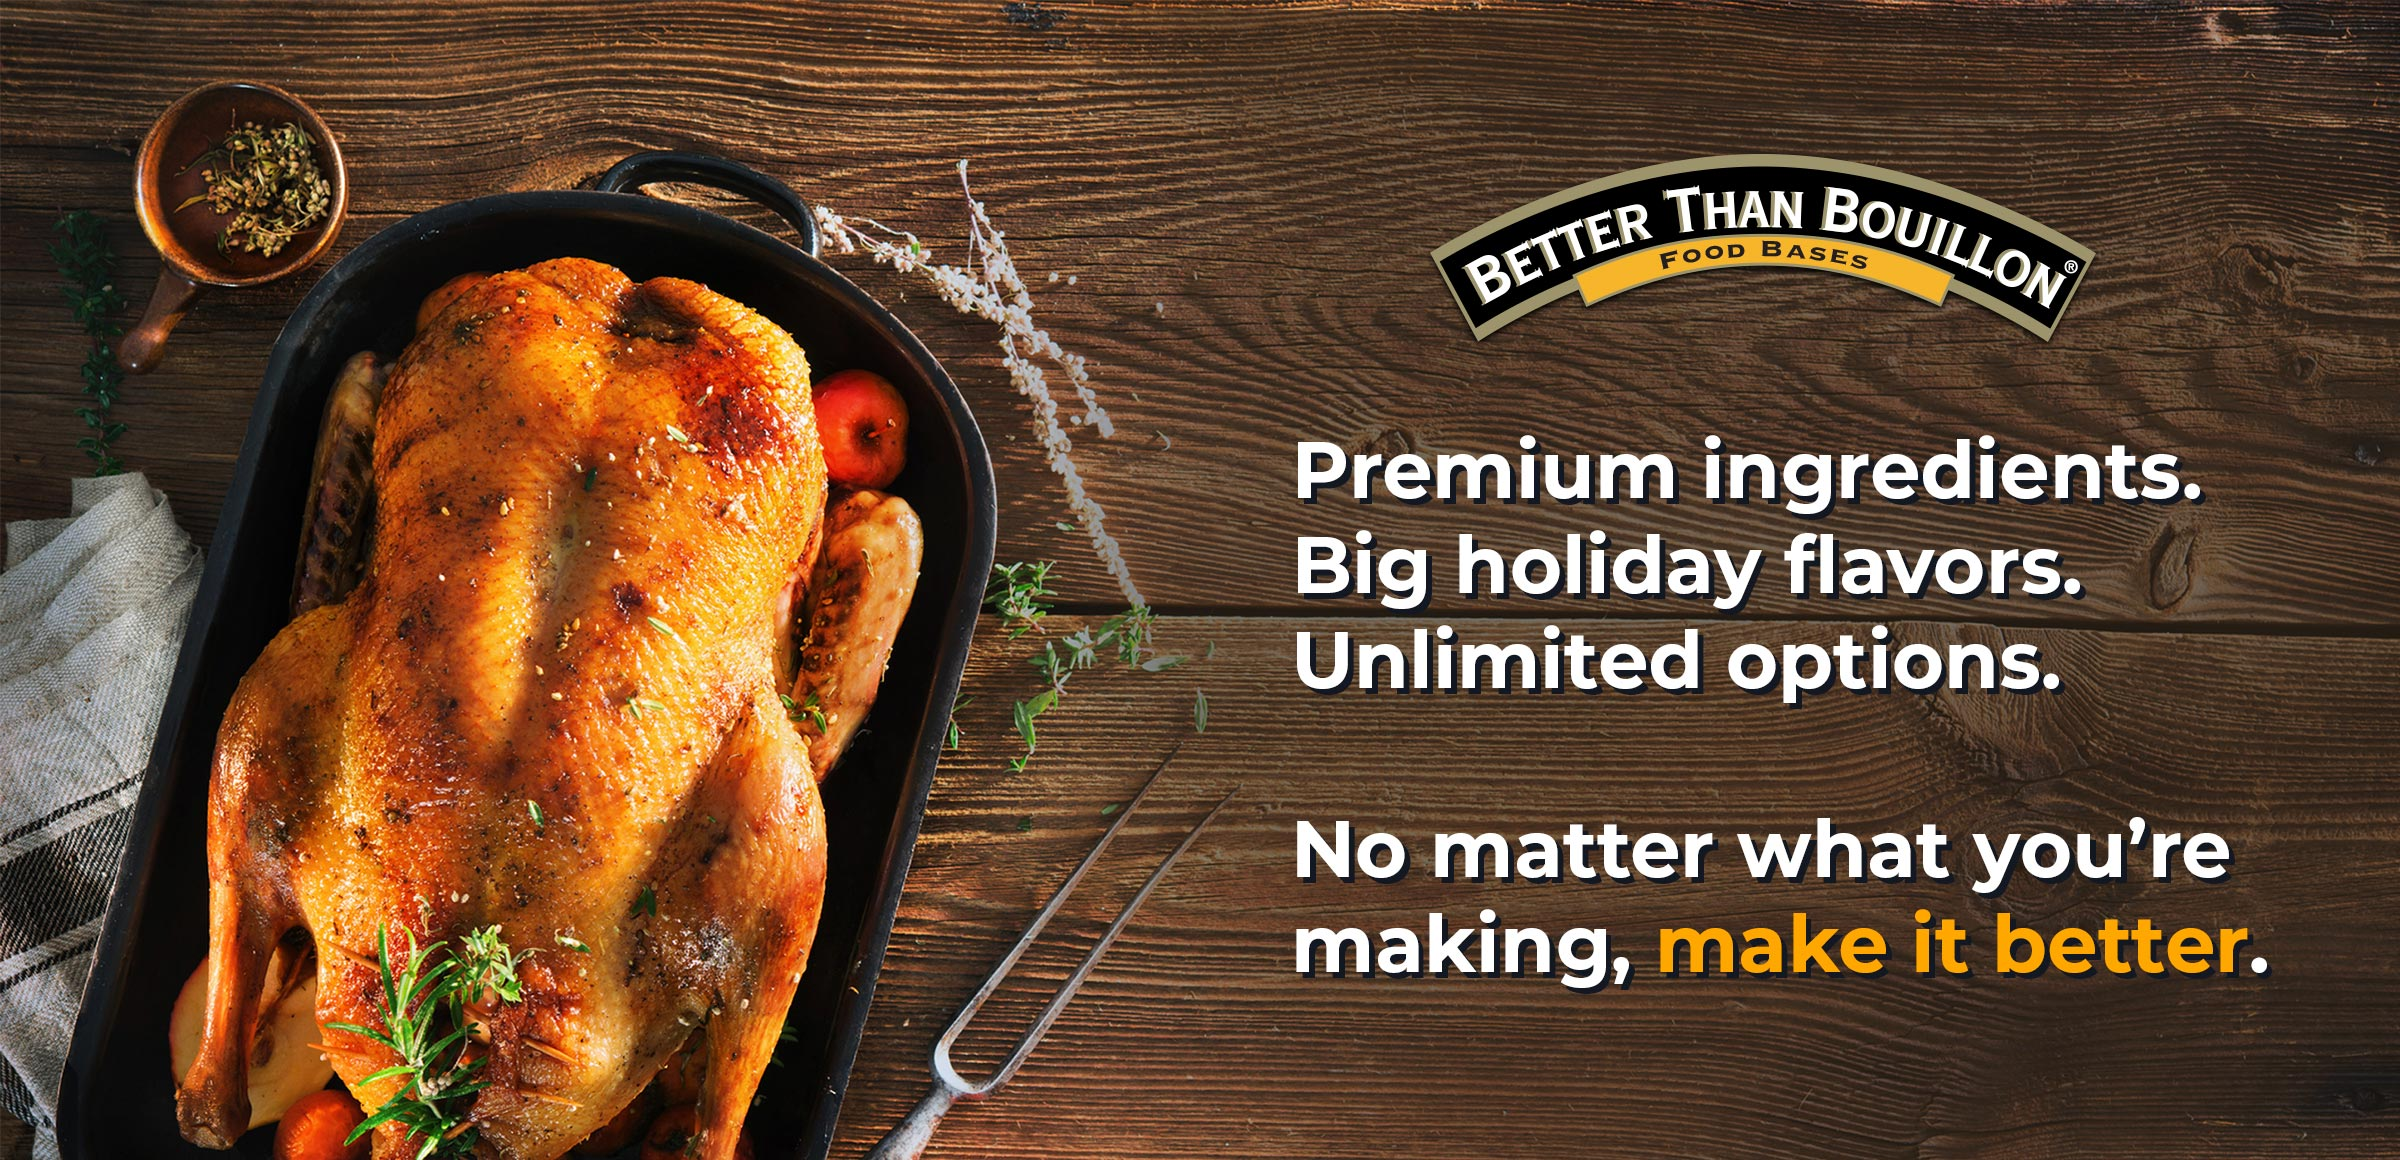 Premium ingredients. Big holiday flavors. Unlimited options. No matter what you're making, make it better.